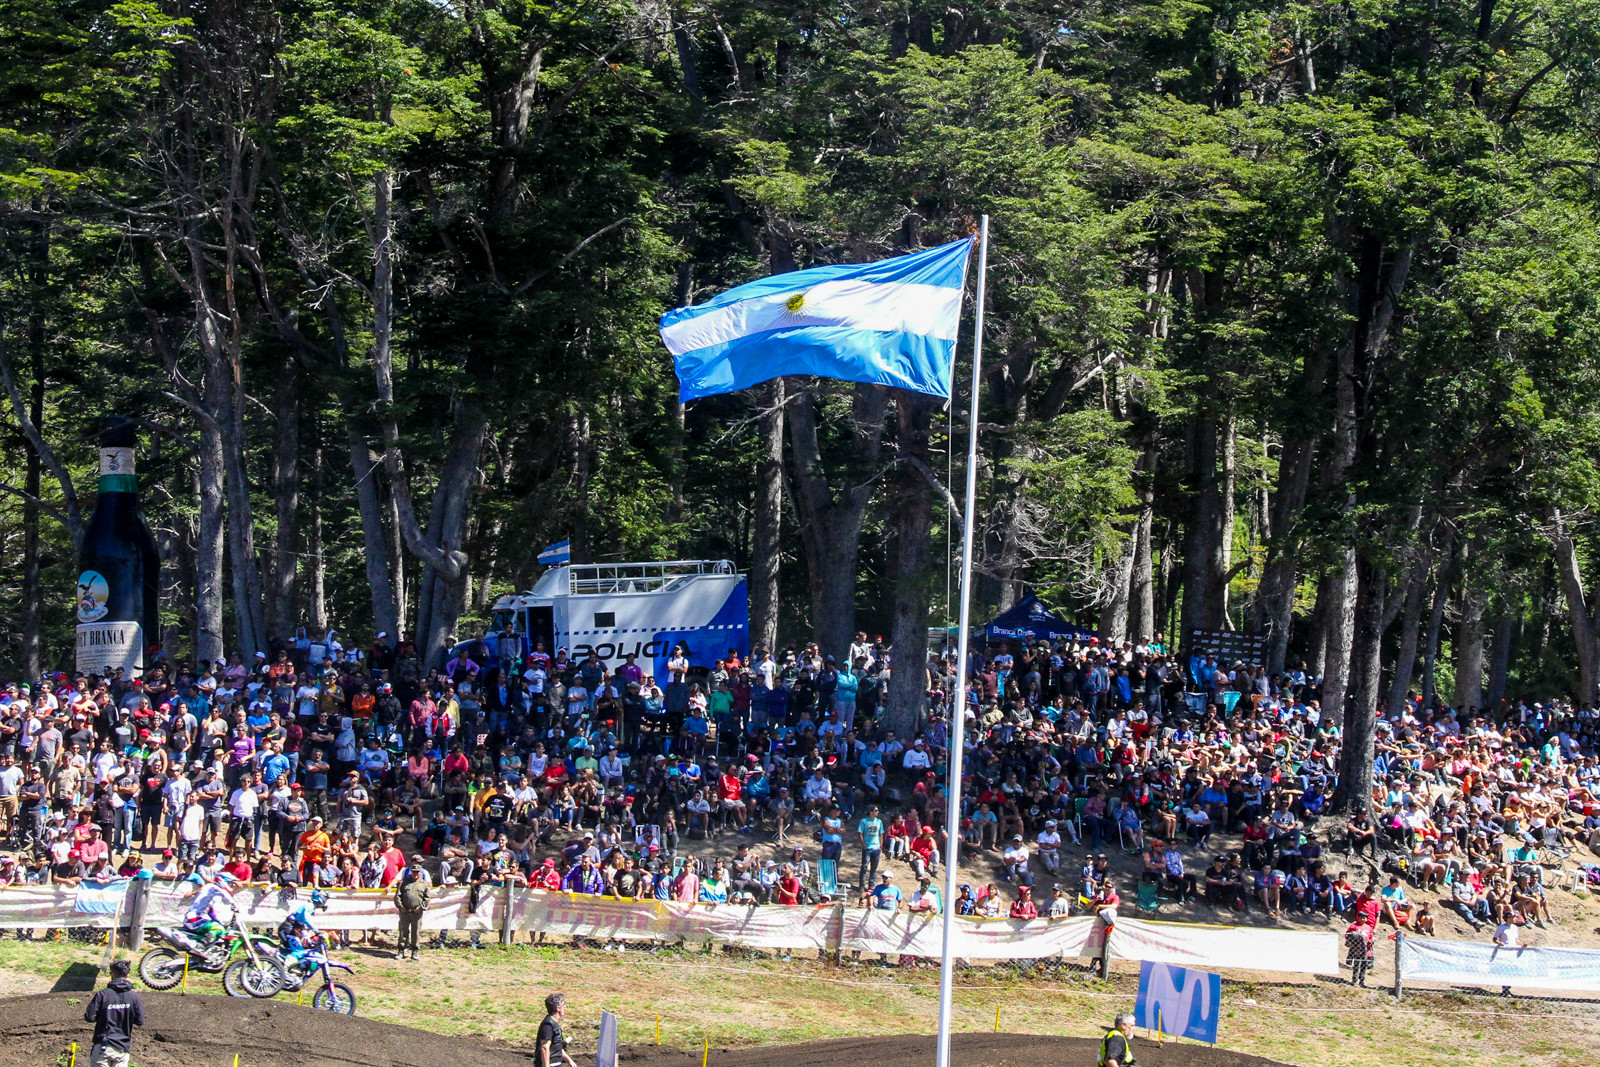 Compared to the prior opening round of the MXGP series, Argentina offered up a solid crowd with one heck of a scene.